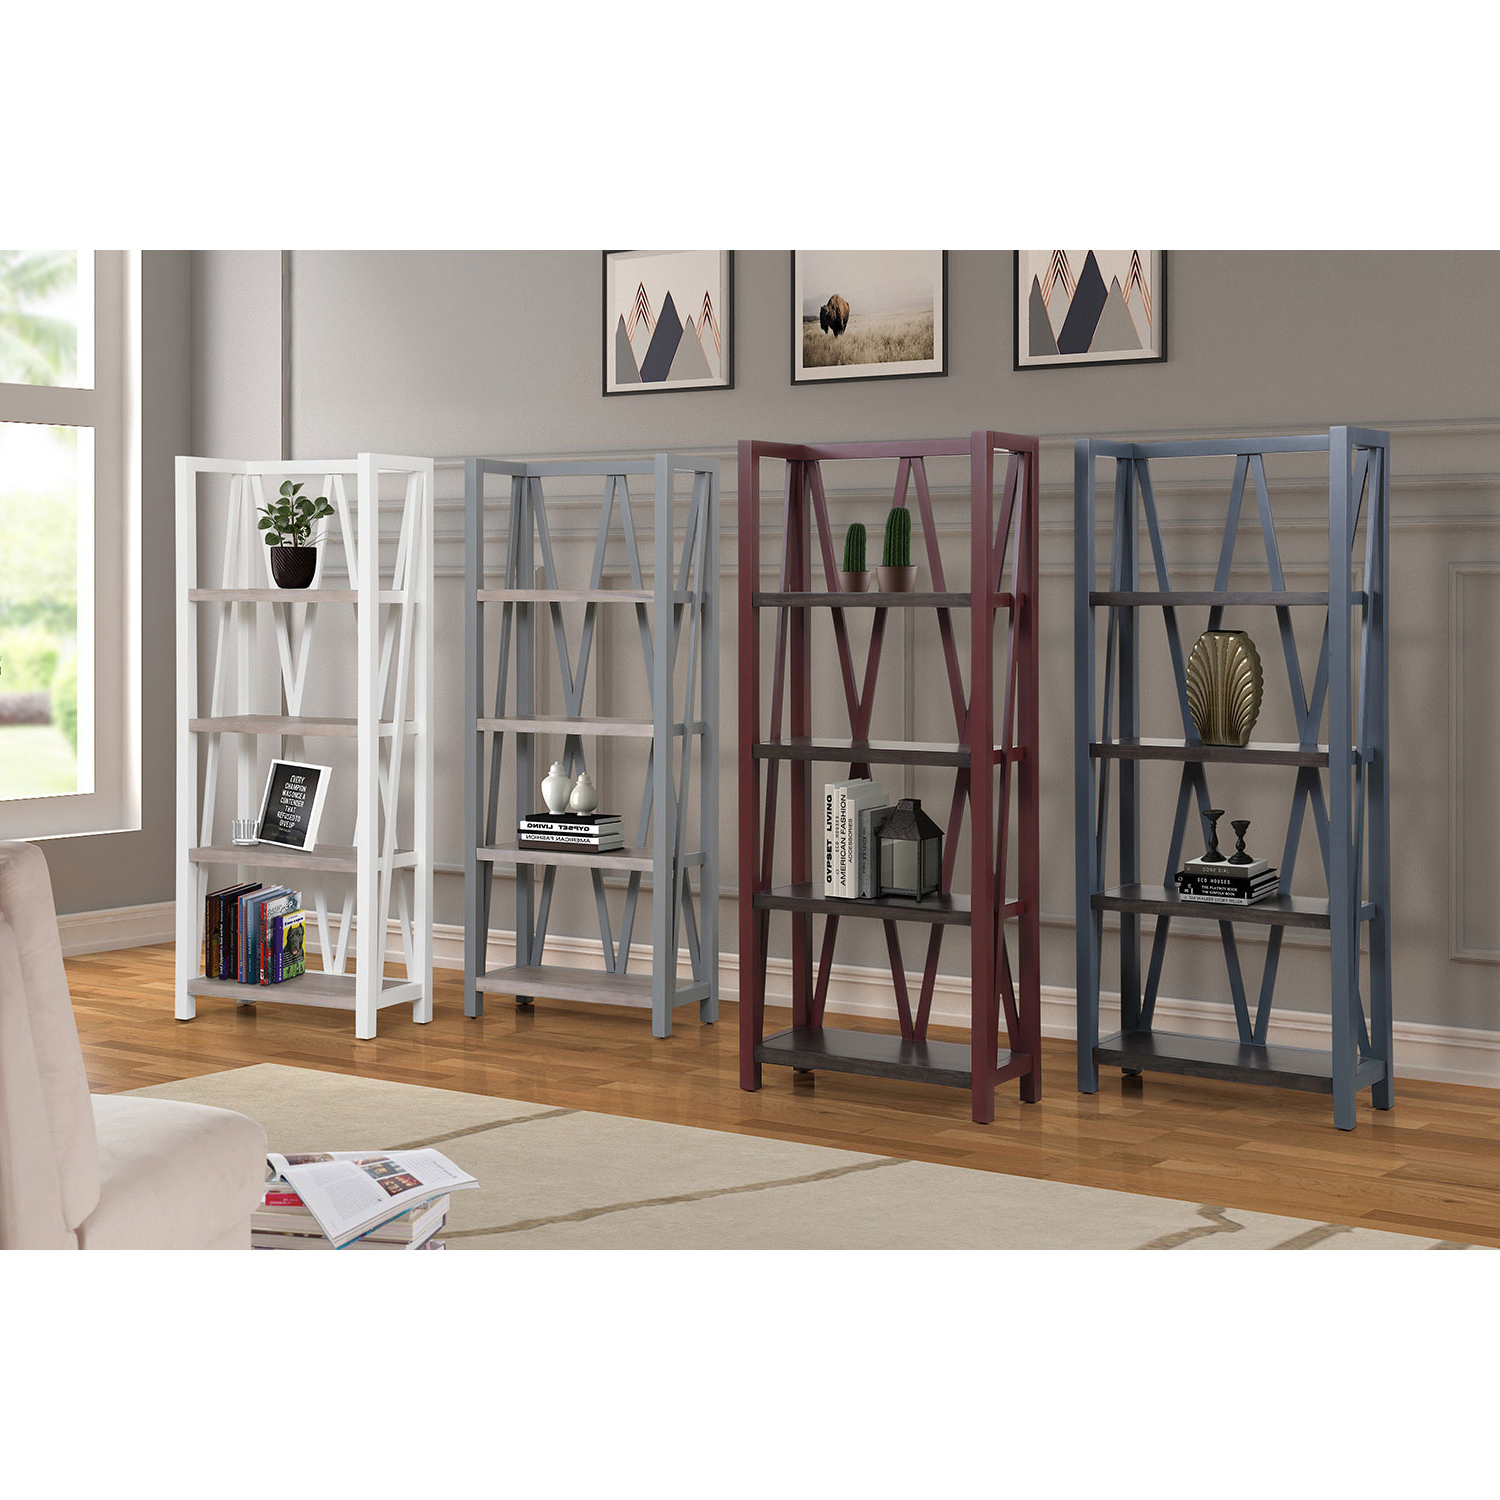 Americana Modern Etagere Bookcase In Dove Grey Woodparker House Pertaining To Best And Newest Parker Modern Etagere Bookcases (View 2 of 20)